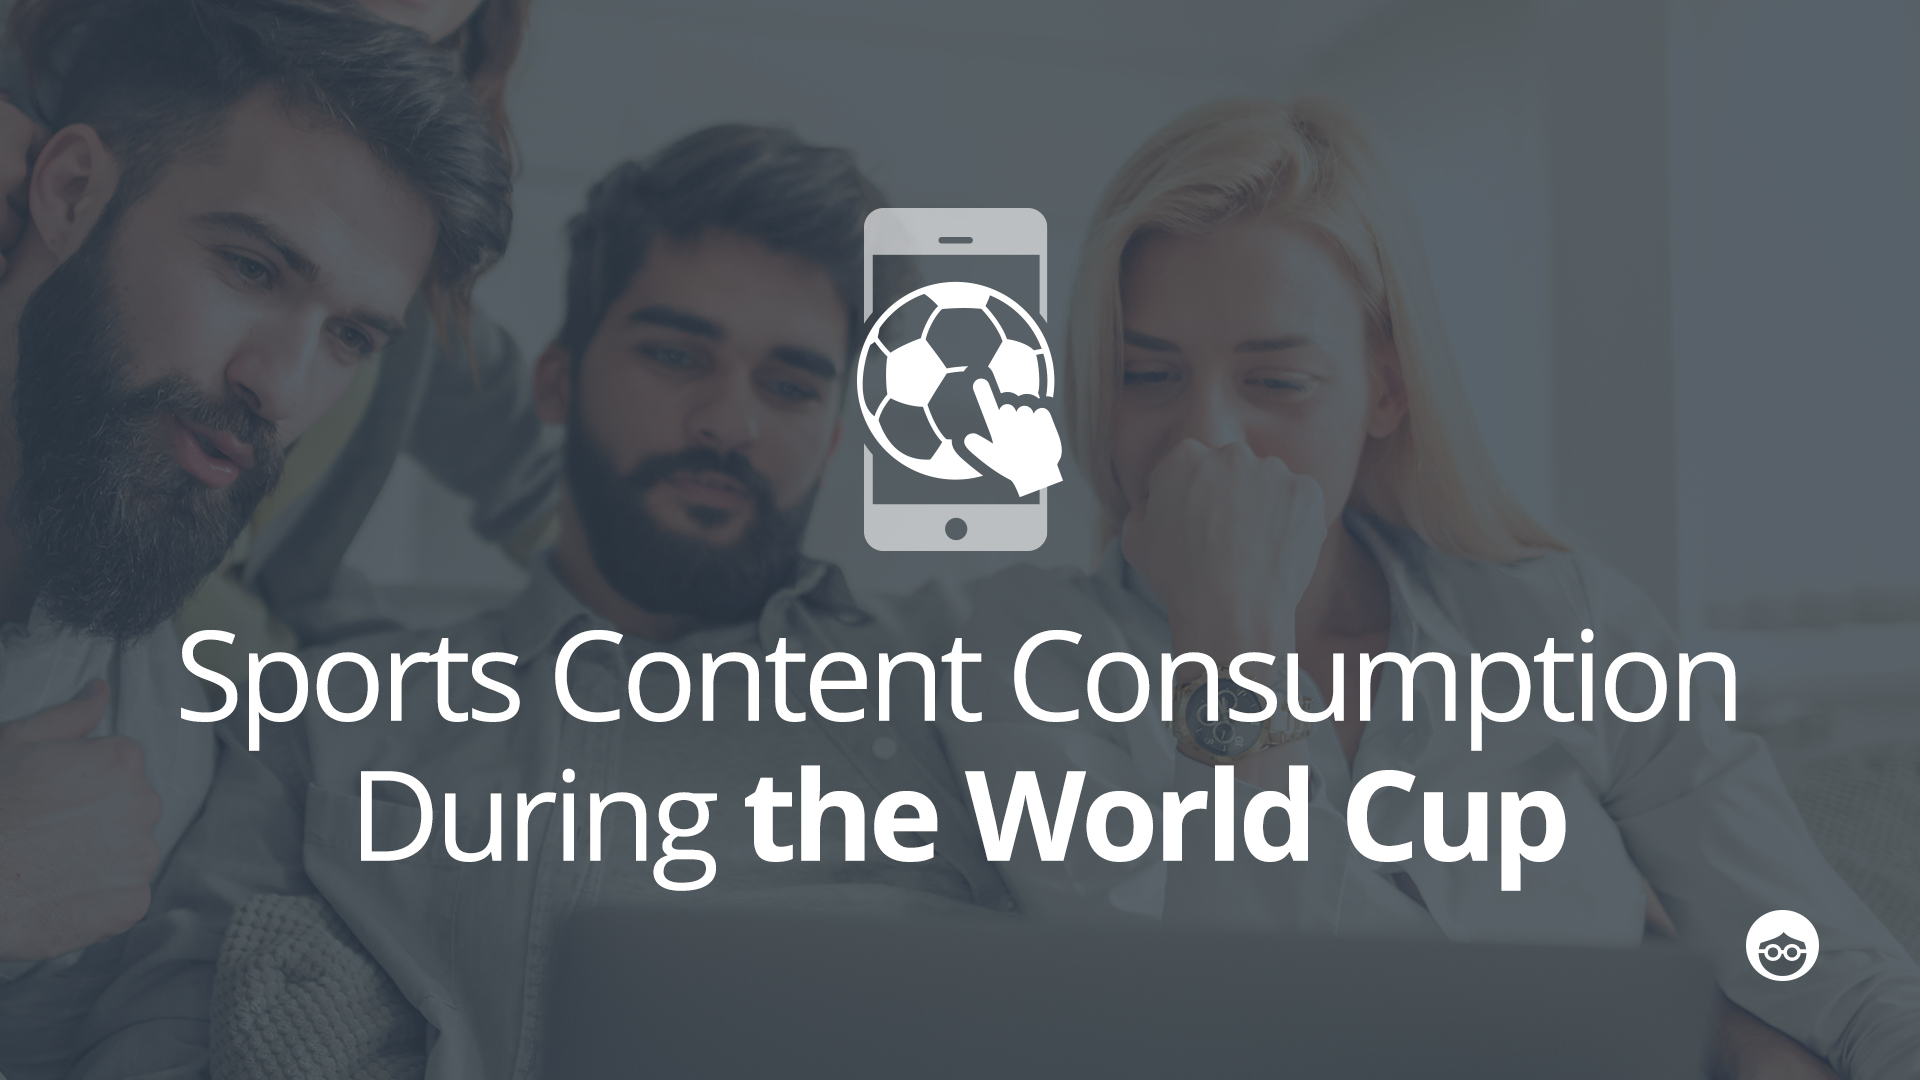 How the World Cup Is Impacting Sports Content Consumption